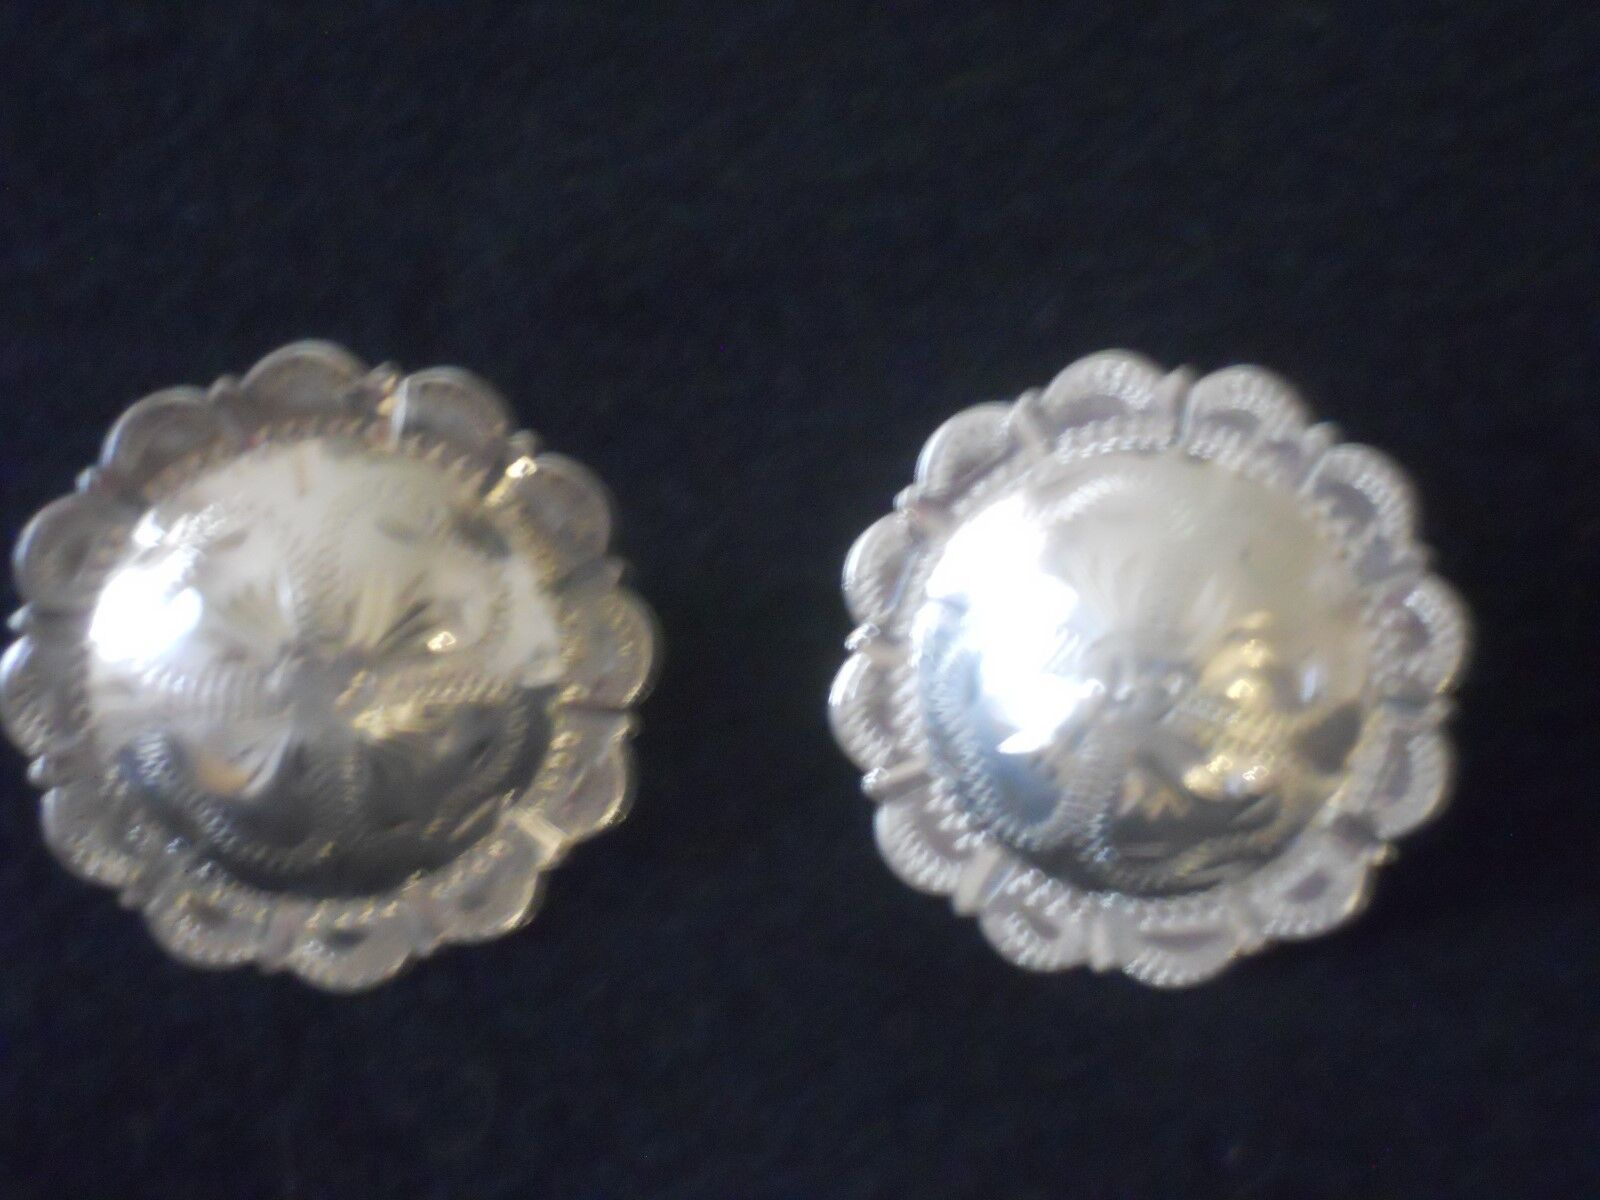 Victor  Leather Goods Sterling Conchos NEW RARE  save up to 70% discount